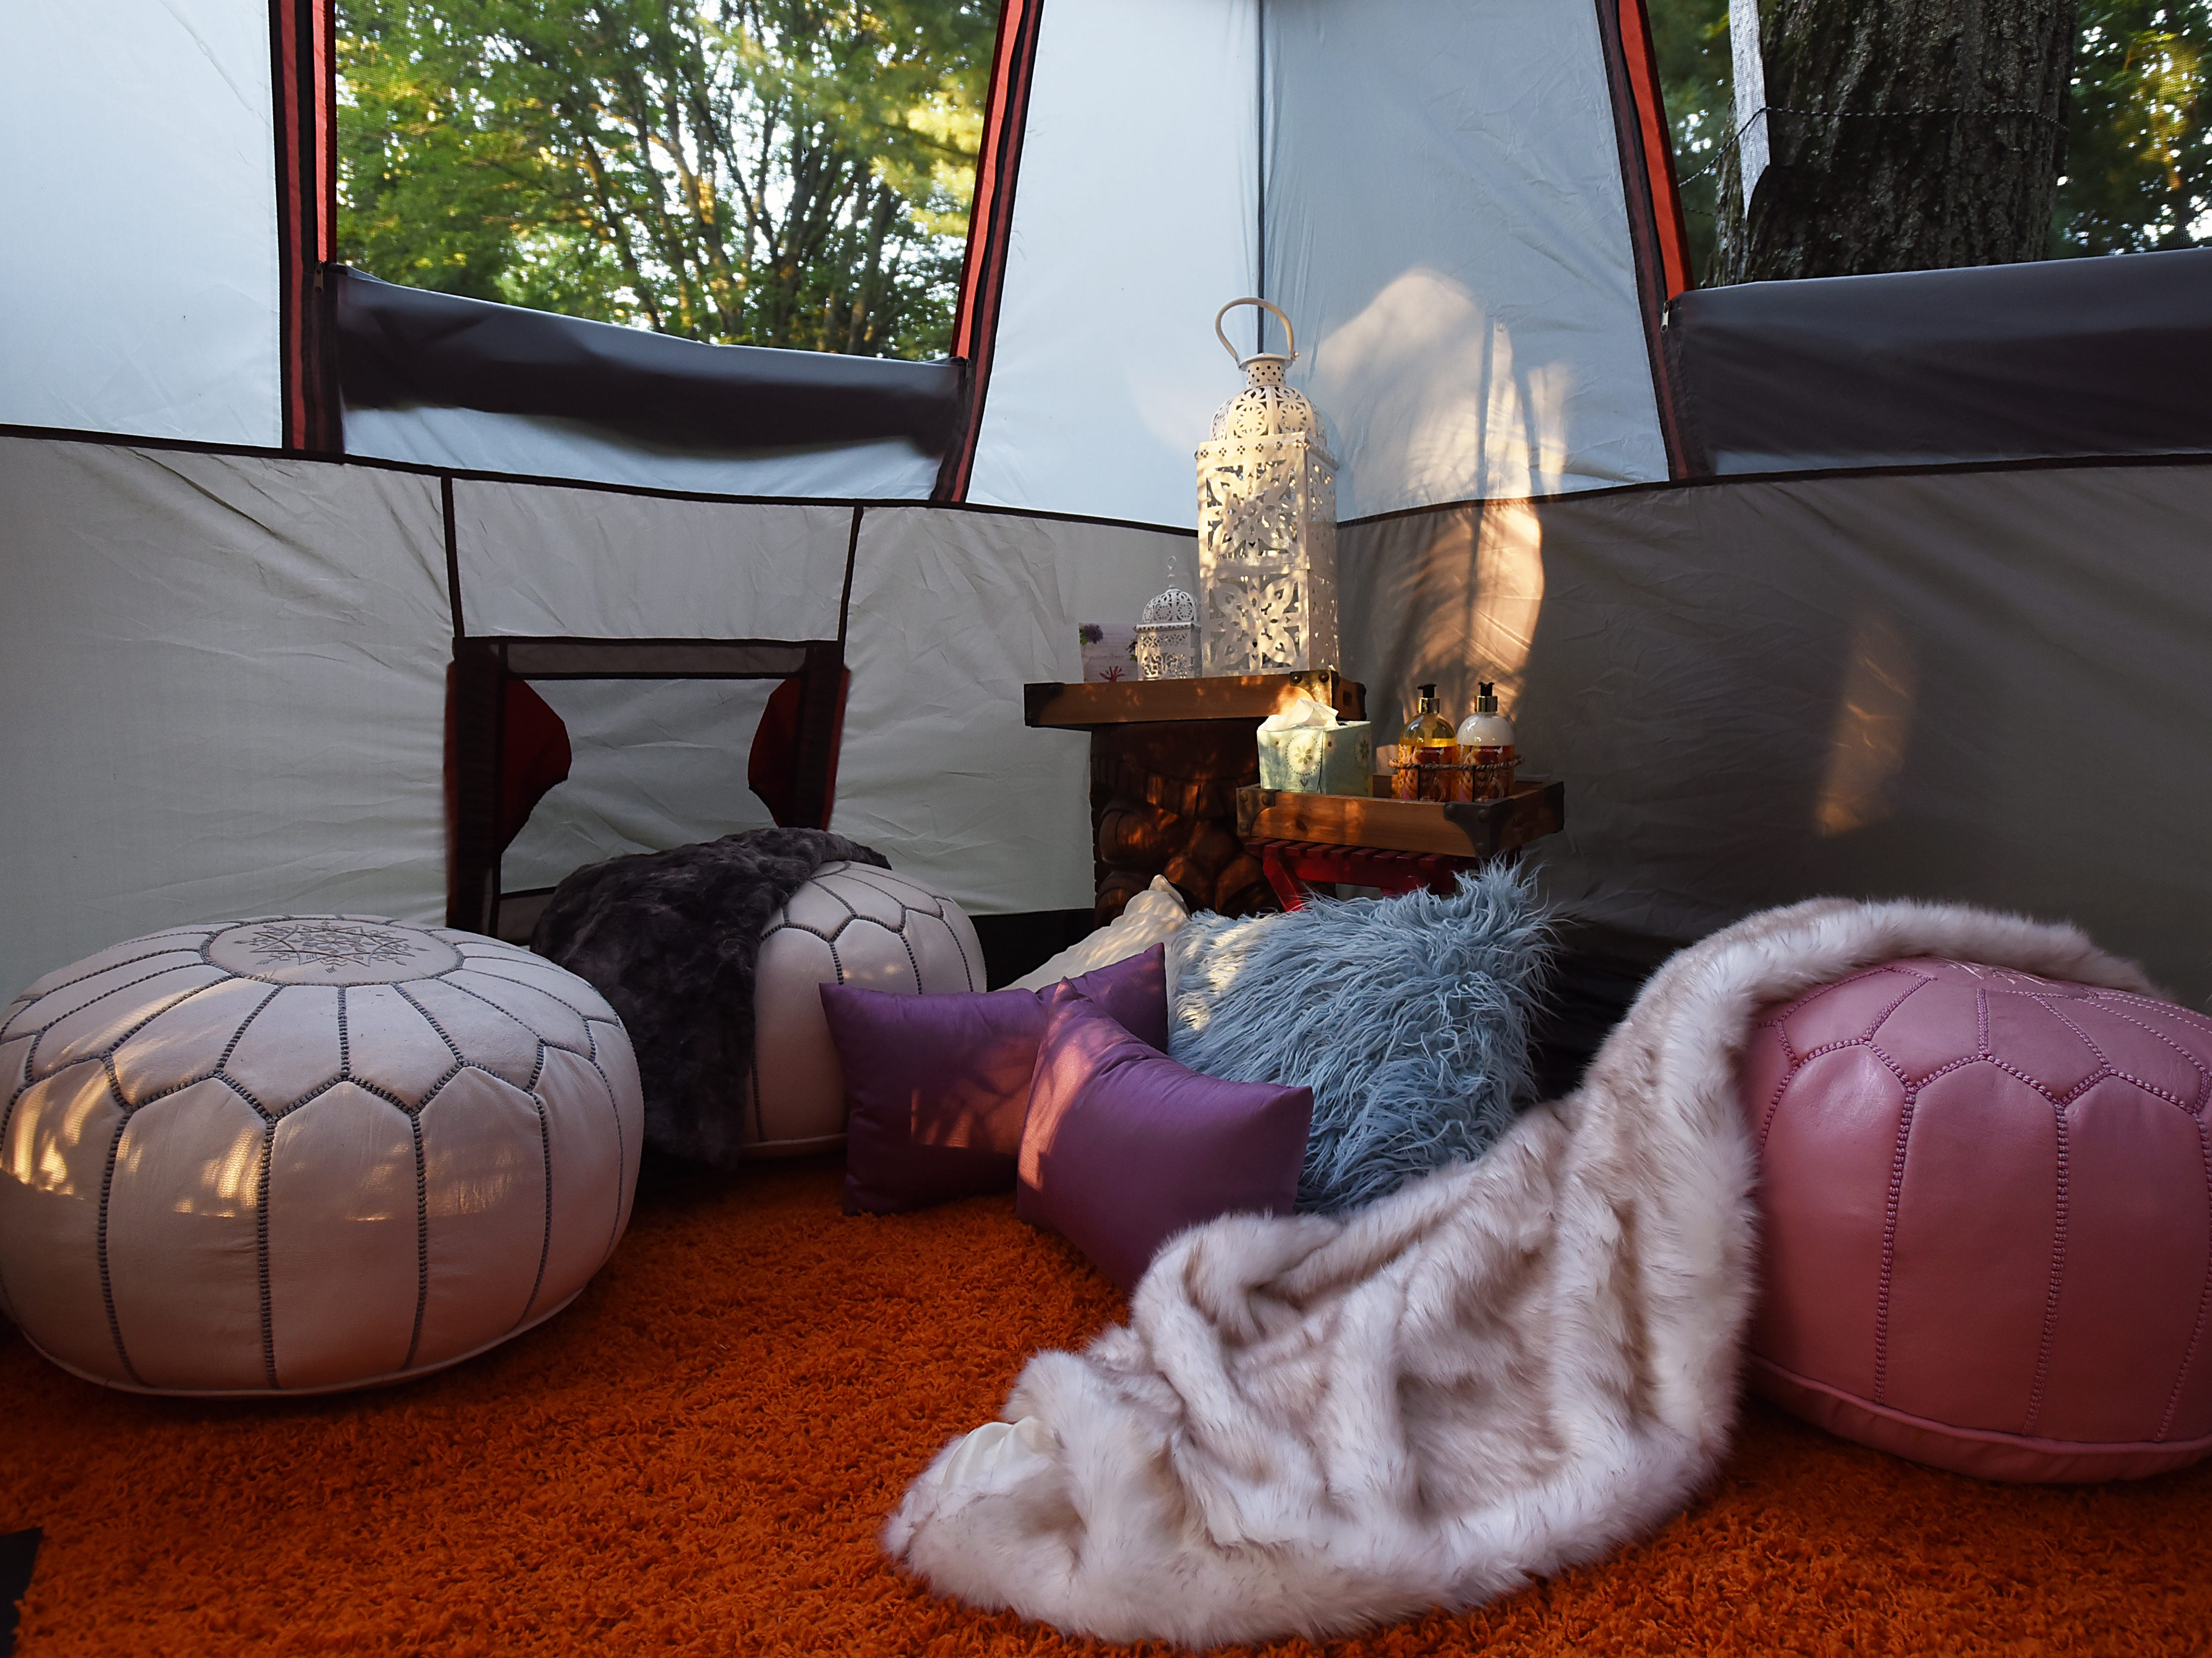 Melissa Ricapito and Mark Pyrka decide to rent out a tent in their backyard on Airbnb as a joke, much to their surprise it's been a hit. The tent rental allows access to all the backyard amenities the West Milford home has to offer. The sitting area of the three room tent is decorated with ottomans, throws, pillows and other accessories. Shown on Thursday August 30, 2018.